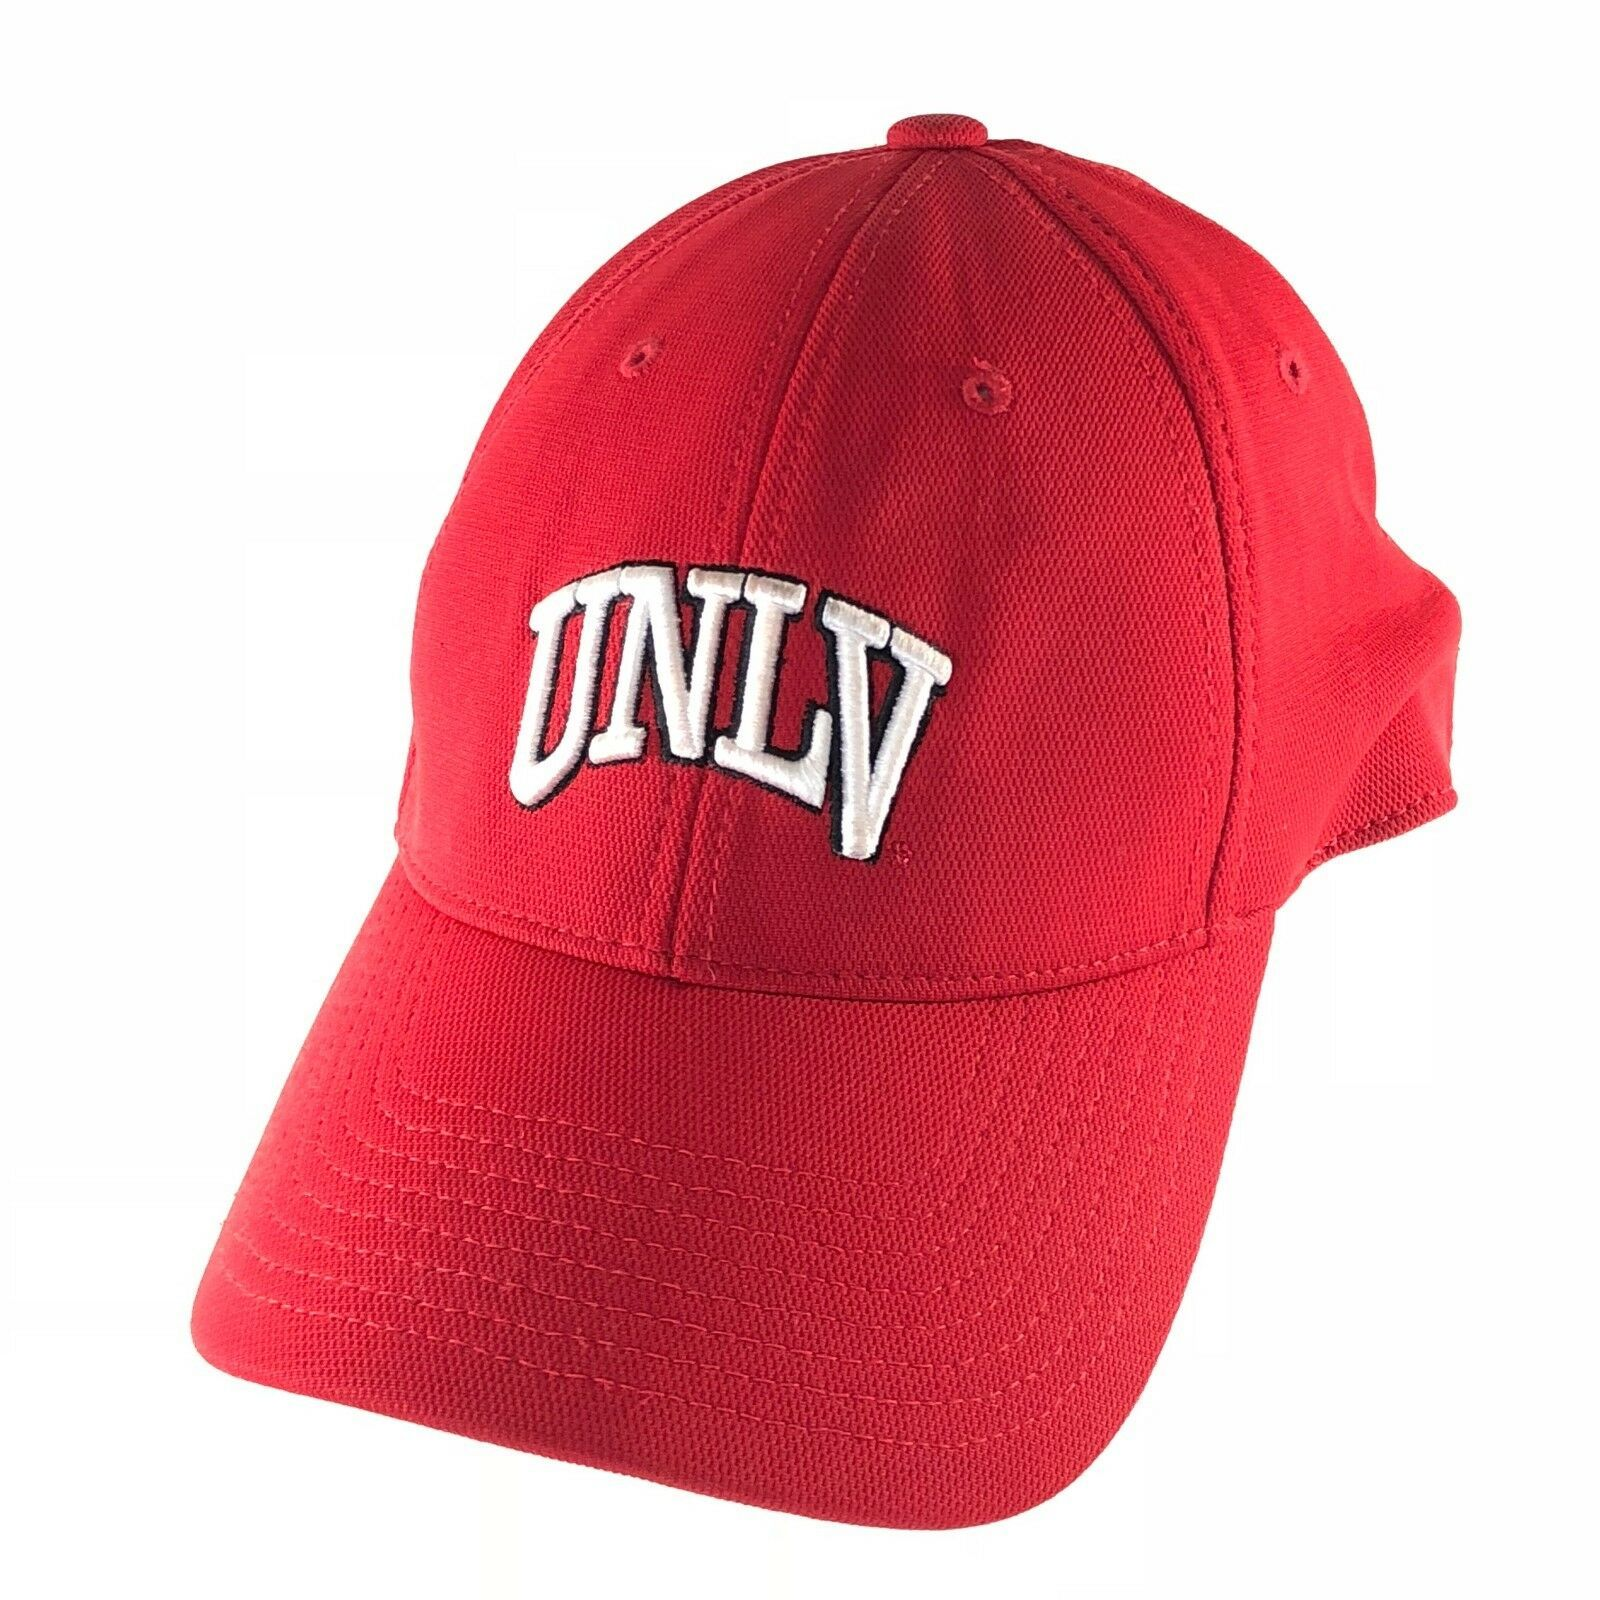 UNLV Rebels University Of Las Vegas 90s Hat Cap Fitted One Size Men Red Stretch